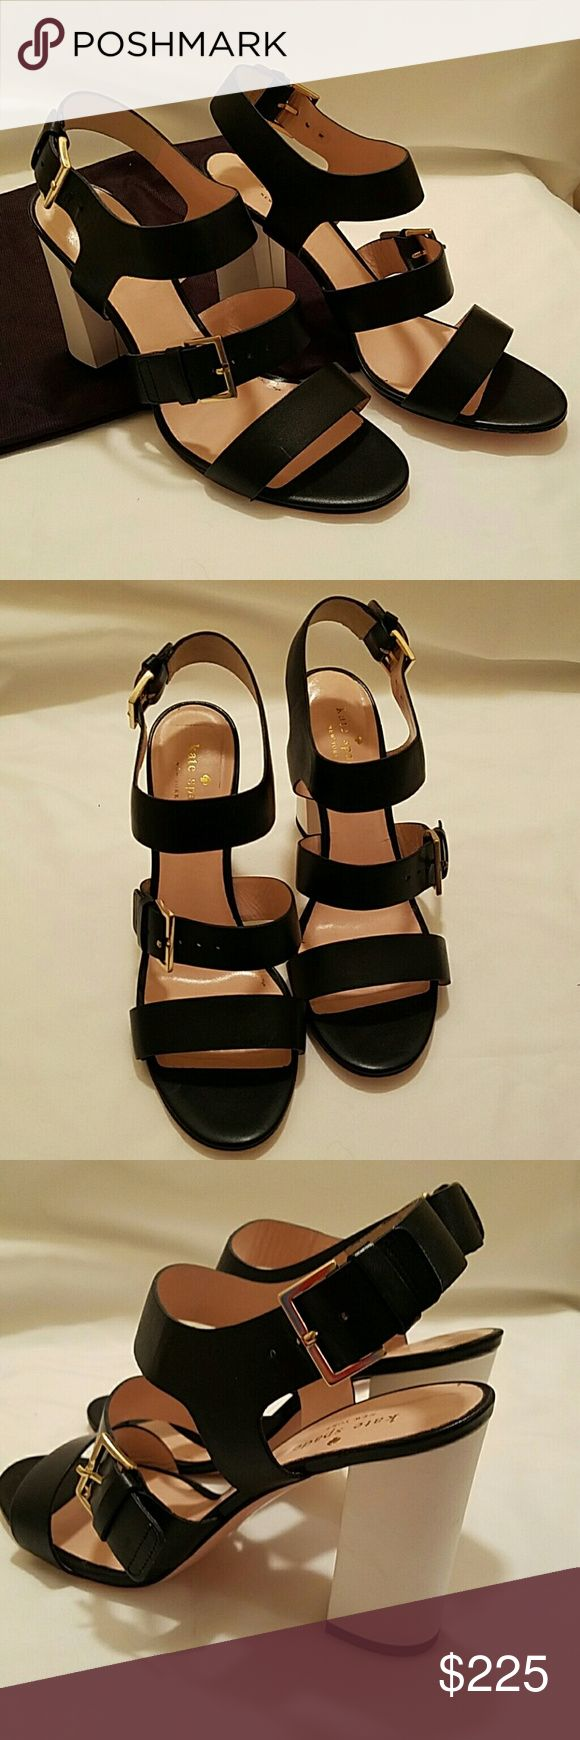 NIB Kate Spade leather sandals Sexy, black and white, Kate Spade leather heels with gold adjustable buckles. Original cloth bag included. Never worn.  Sorry, but I can't find the lid to the box! kate spade Shoes Heels